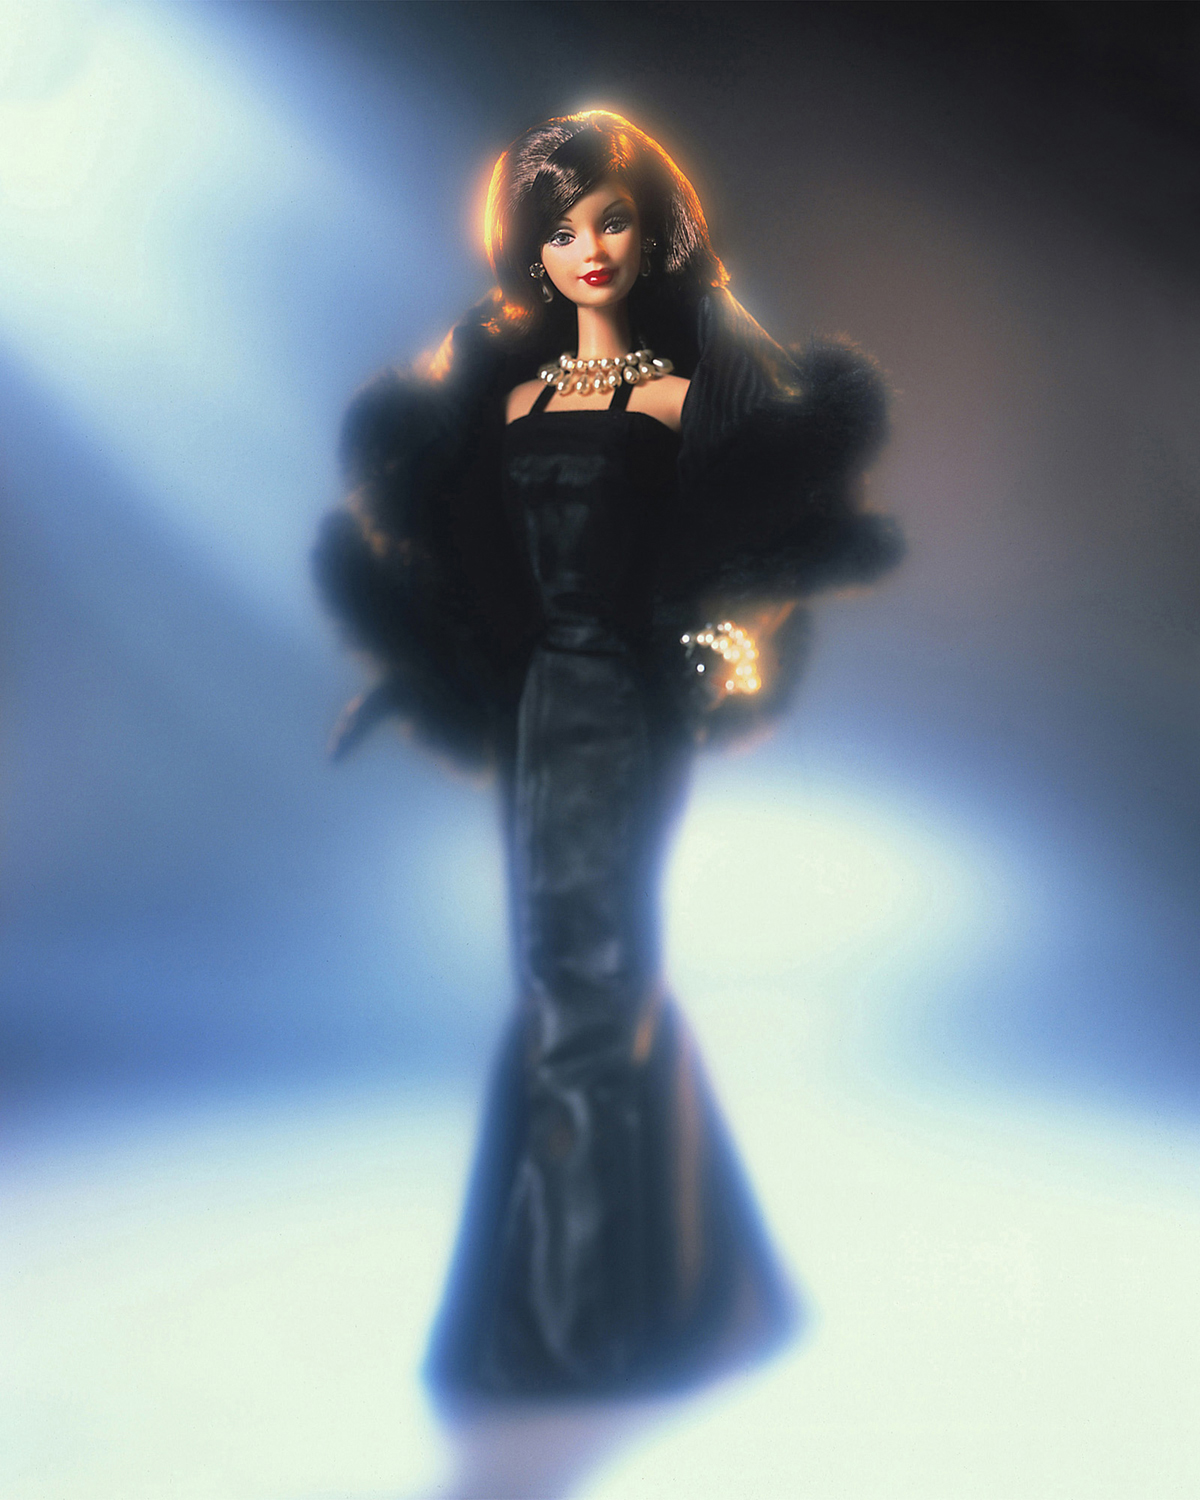 The Givenchy Barbie Doll, released in 2000.